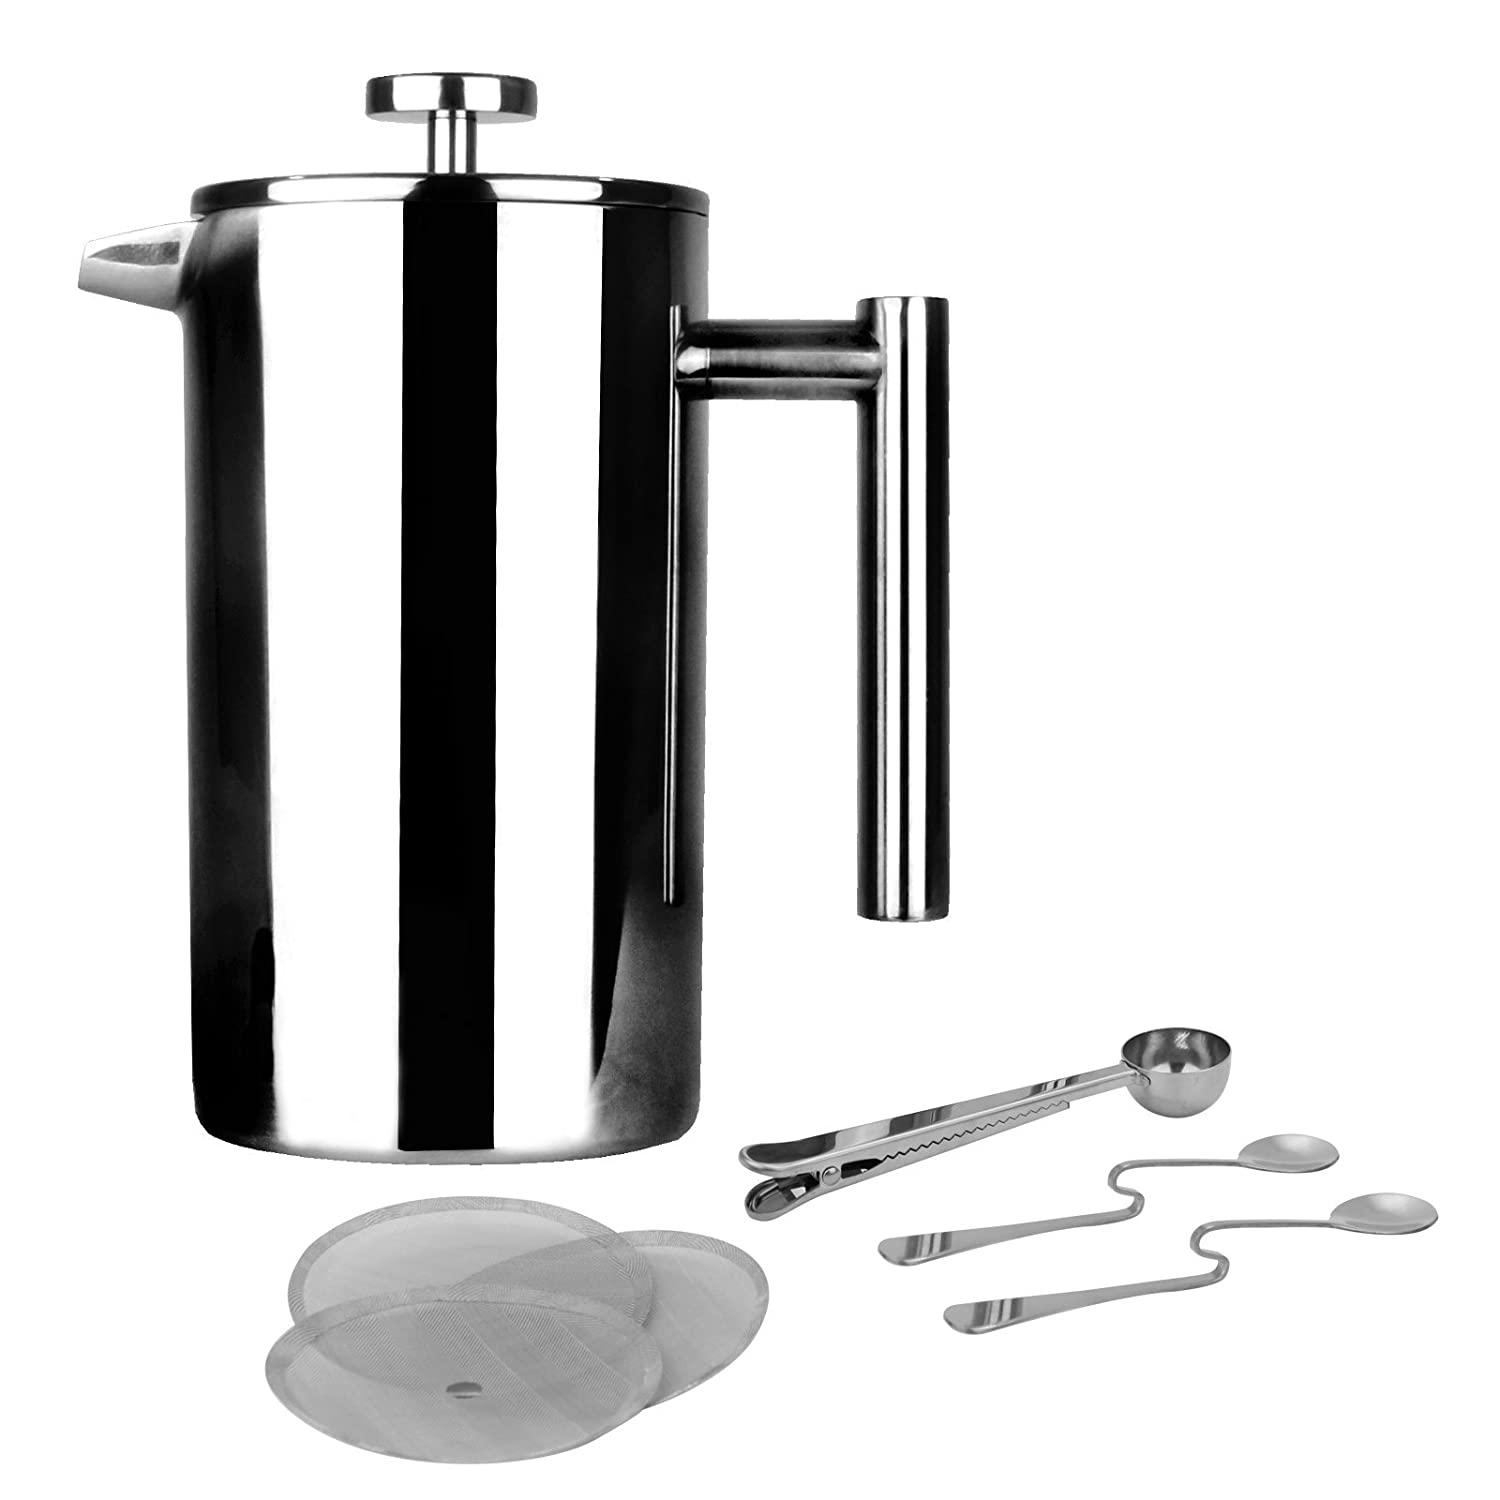 French Press Cafetiere | Stainless Steel Coffee Press Maker | FREE Extra Filters / Measuring spoons / Bag Clip | Double Walled Insulation | 7pc Coffee Gift Set | M& W 1500ml Xbite